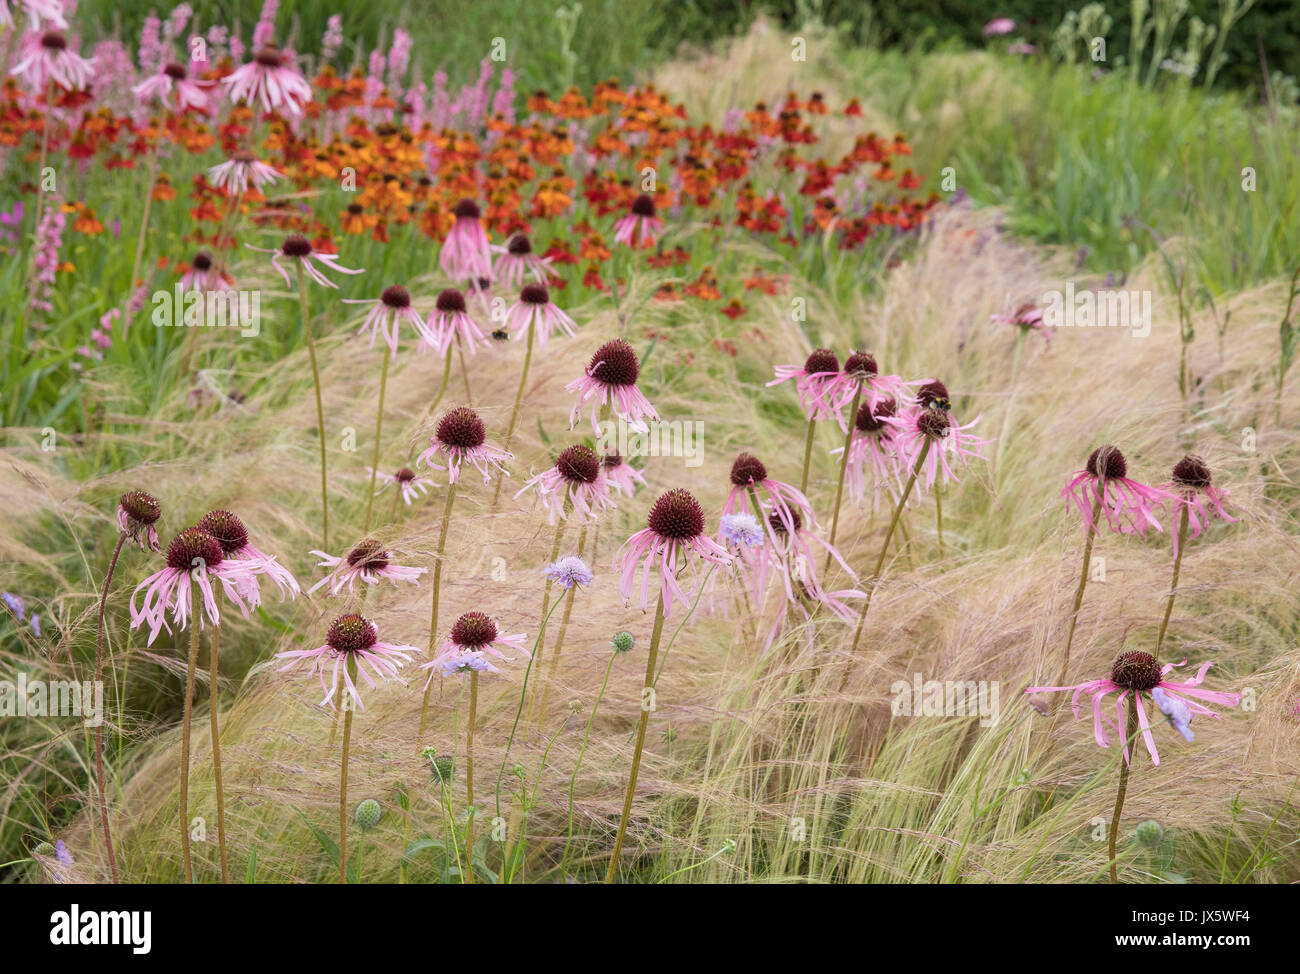 Striking association of Stipa tenuissima Ponytails grass, Echinacea purpurea and Helenium in the perennial garden at Hauser and Wirth in Somerset - Stock Image